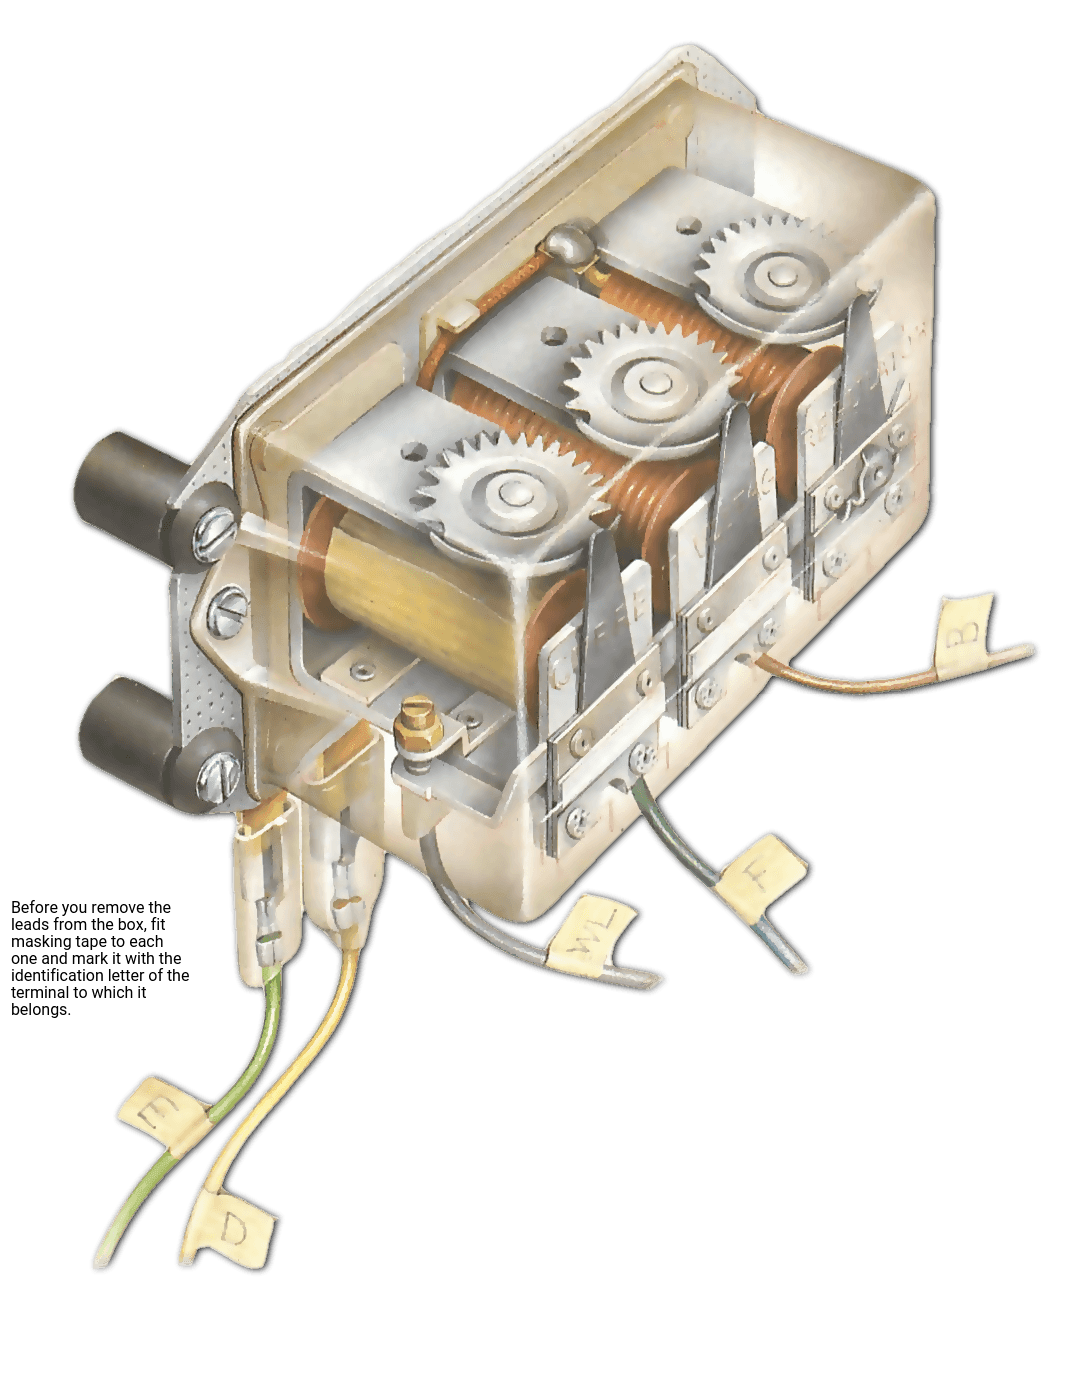 Junction Box Google Patents On Wiring A Junction Box With A Light